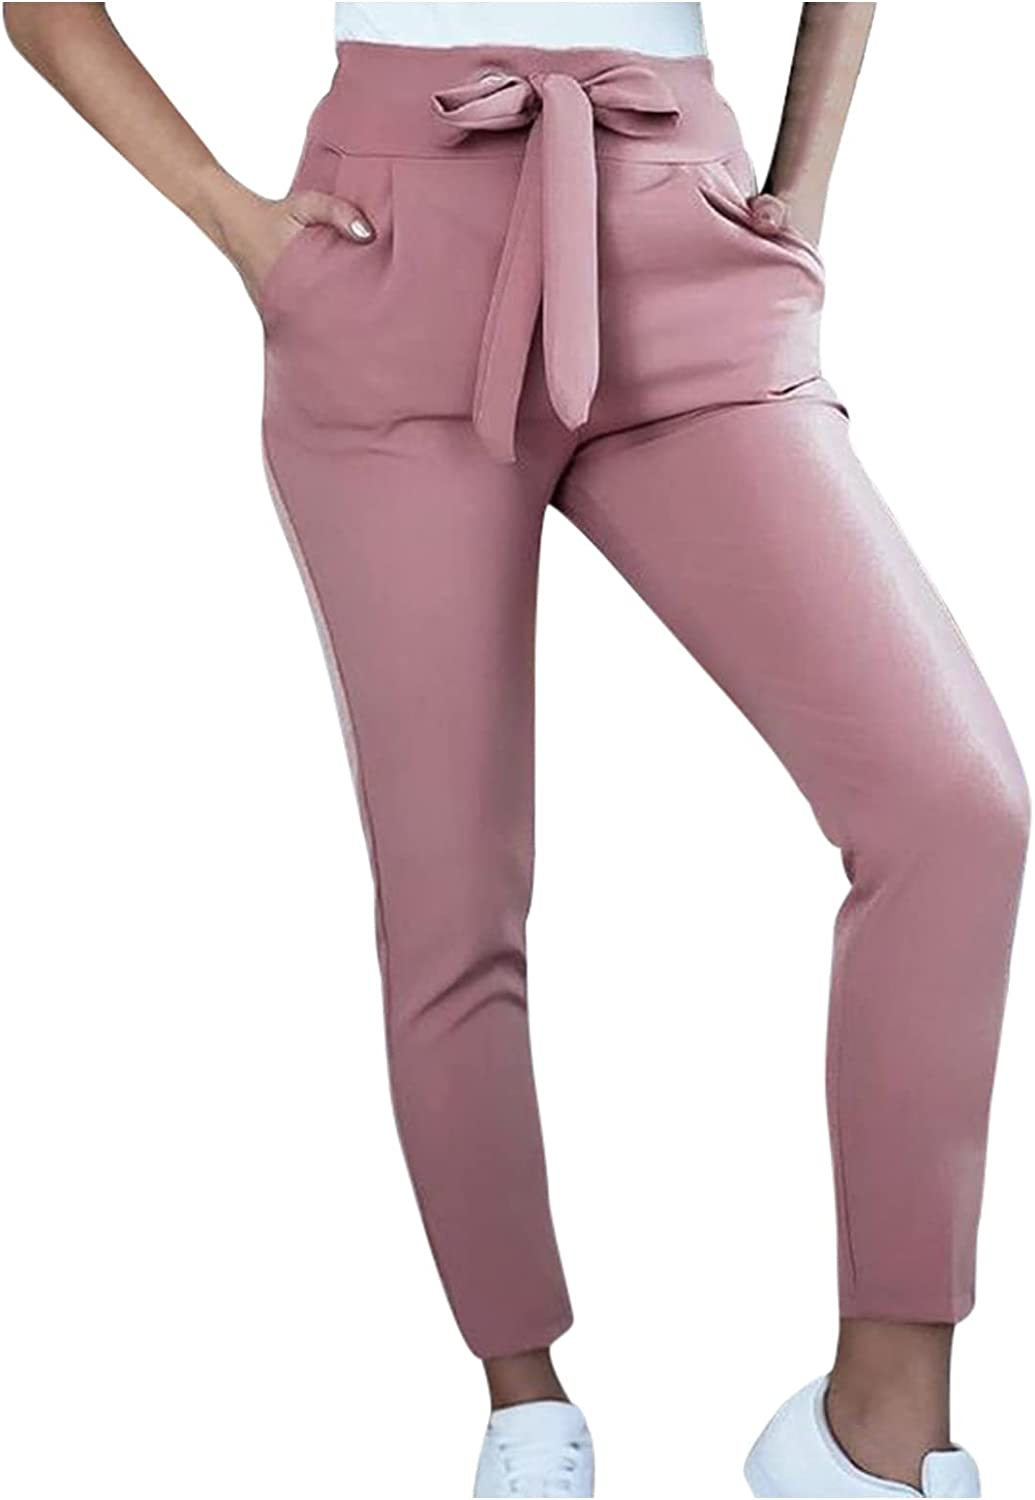 Pyhlmscde Women Summer Trousers Work Business Elegant Pencil Trousers Solid Color Casual Capri Pants with Pockets